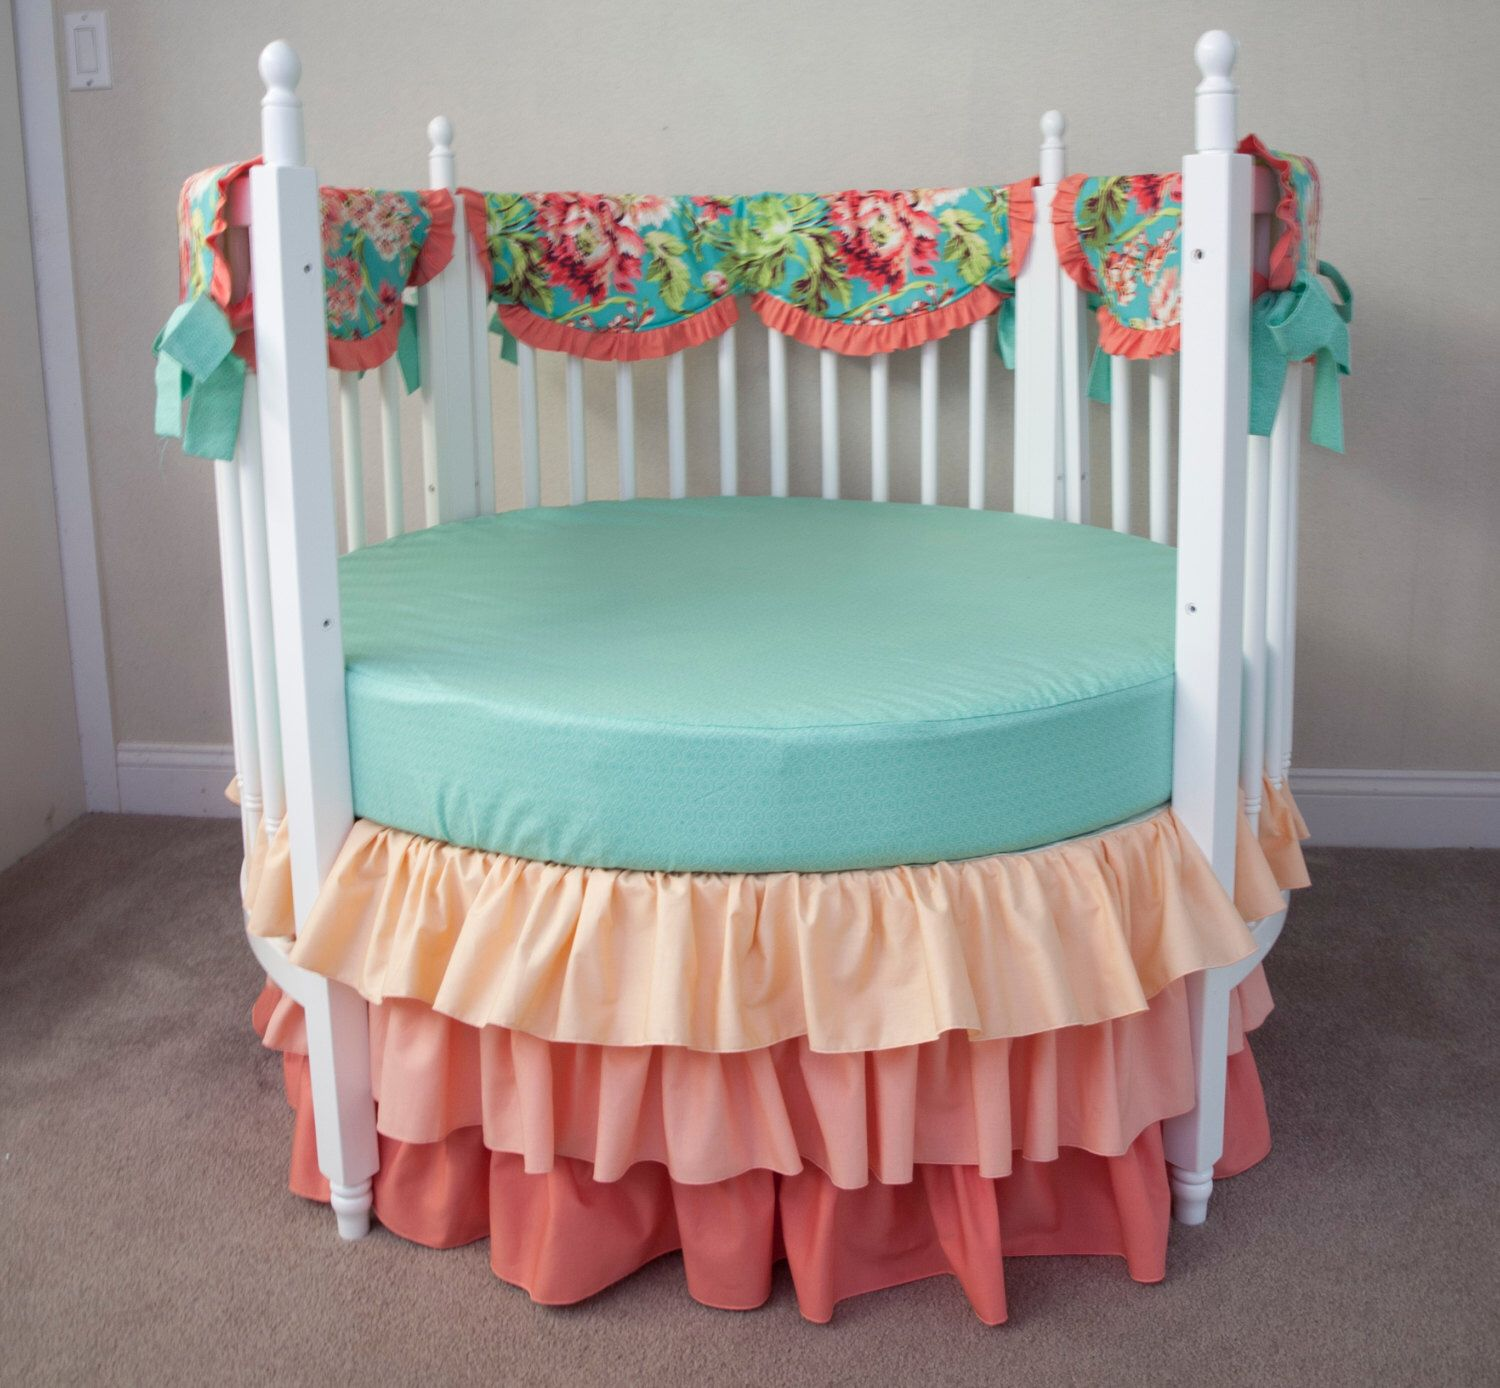 polka plain full pink nursery grey of sheet baby infant modern teal and the shell jill blue set bumper skirt jack sheets size bedding orange crib new revealed arrivals cot gray mystery piece dot carnival elephant turquoise cribs aqua peanut